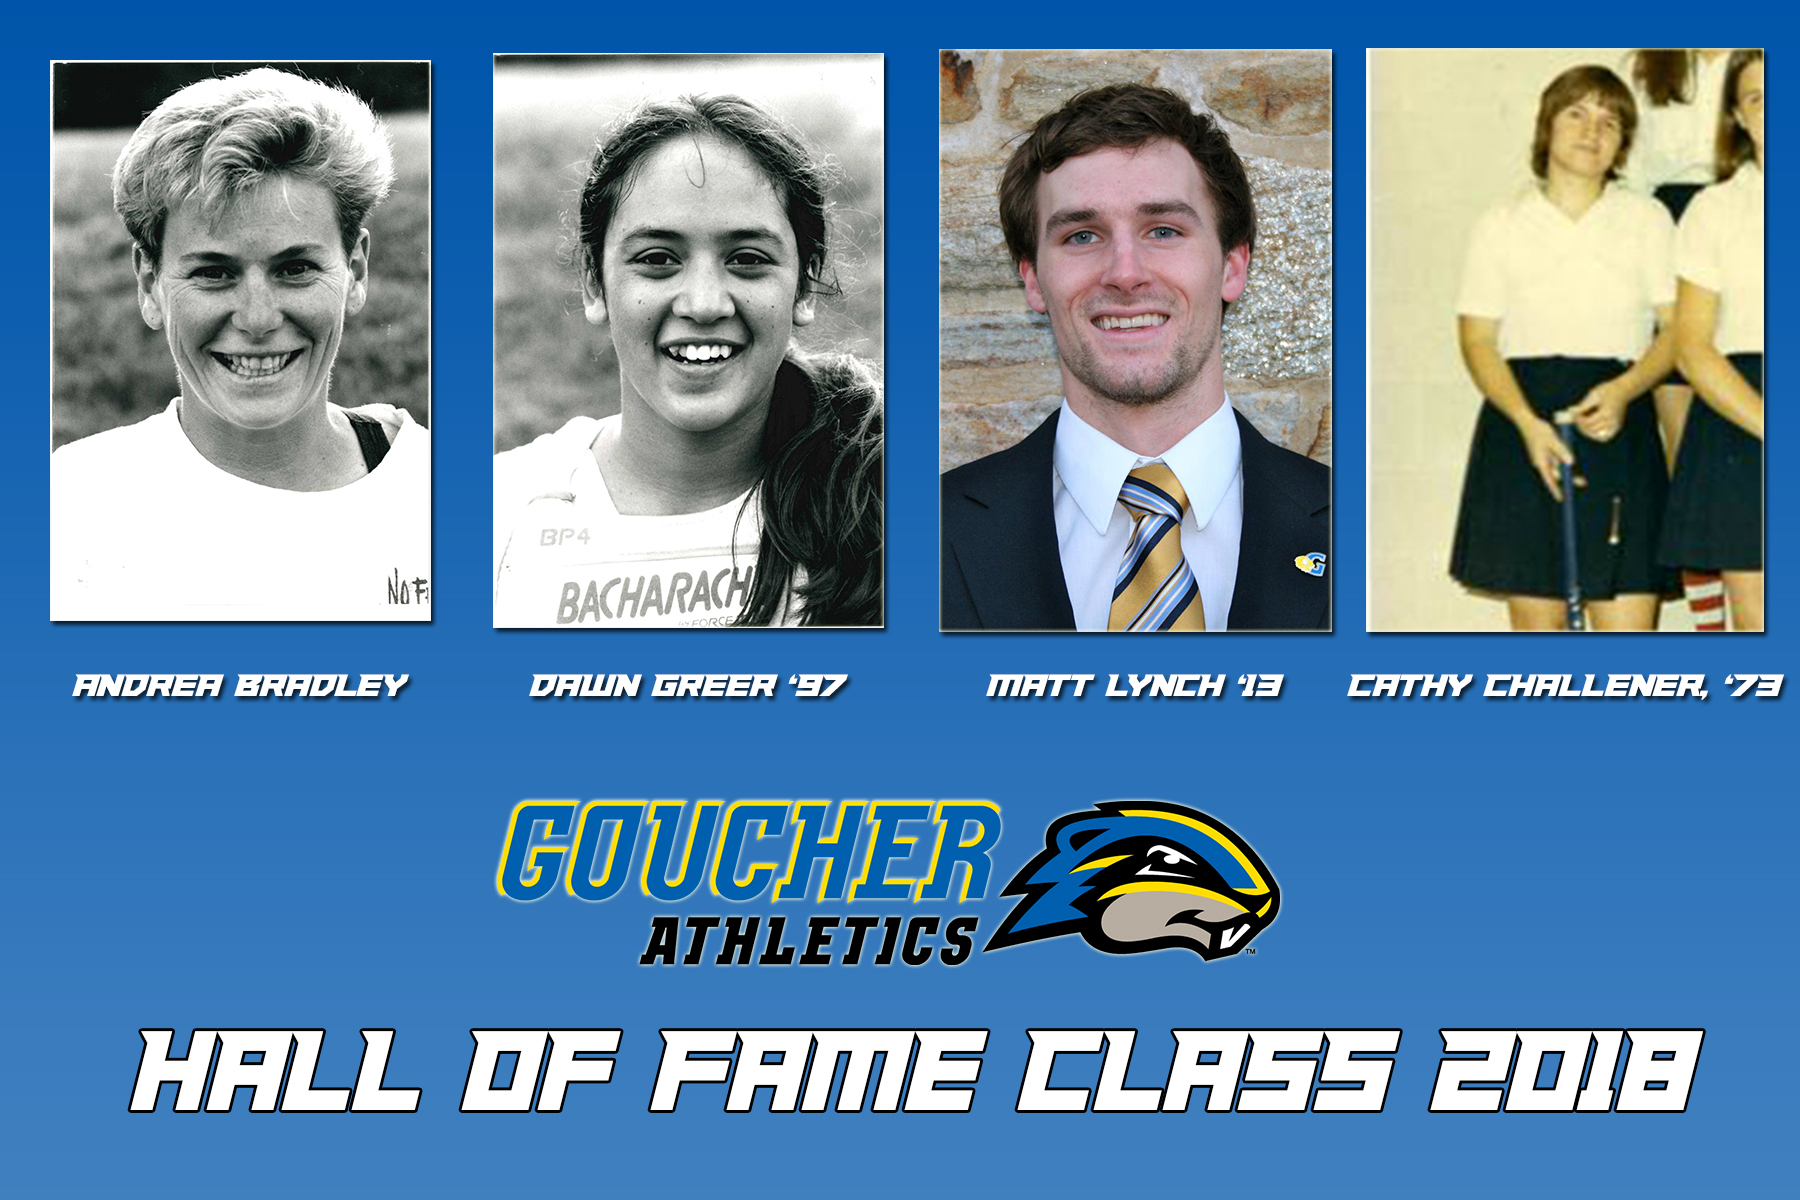 Four to be Inducted into Goucher College Athletics Hall of Fame Class in April